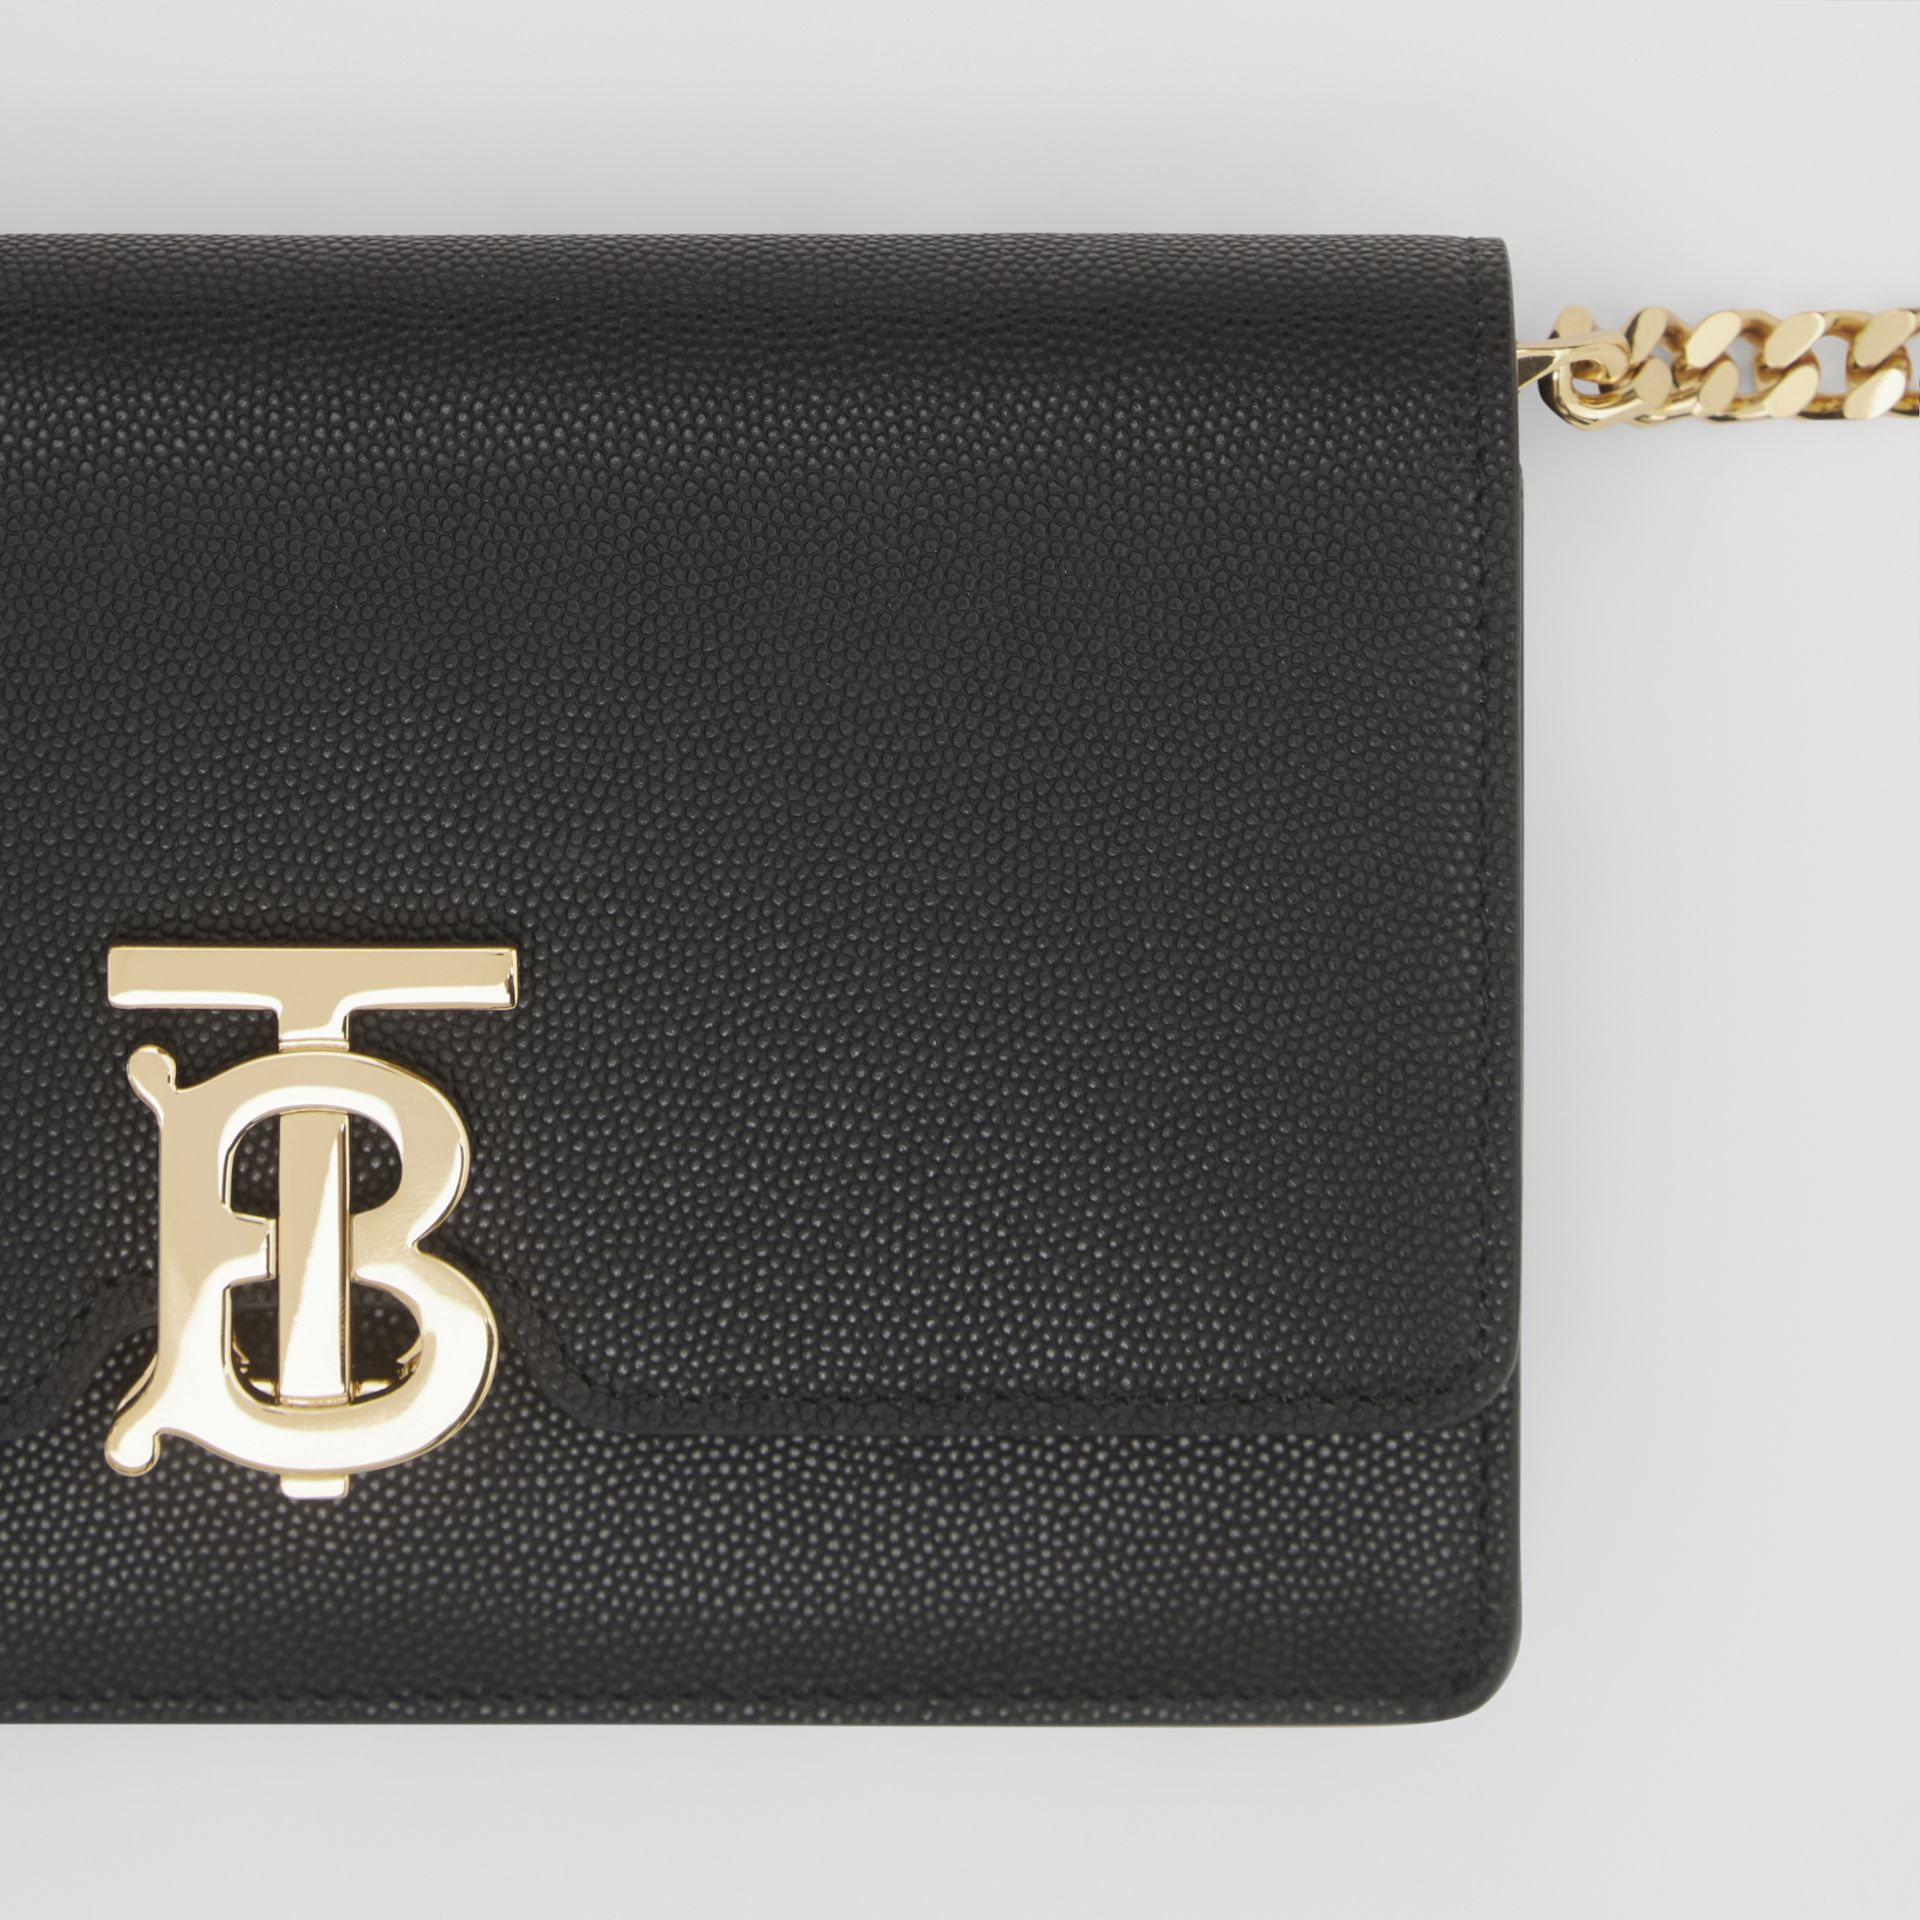 Small Grainy Leather Shoulder Bag in Black - Women | Burberry United Kingdom - gallery image 1